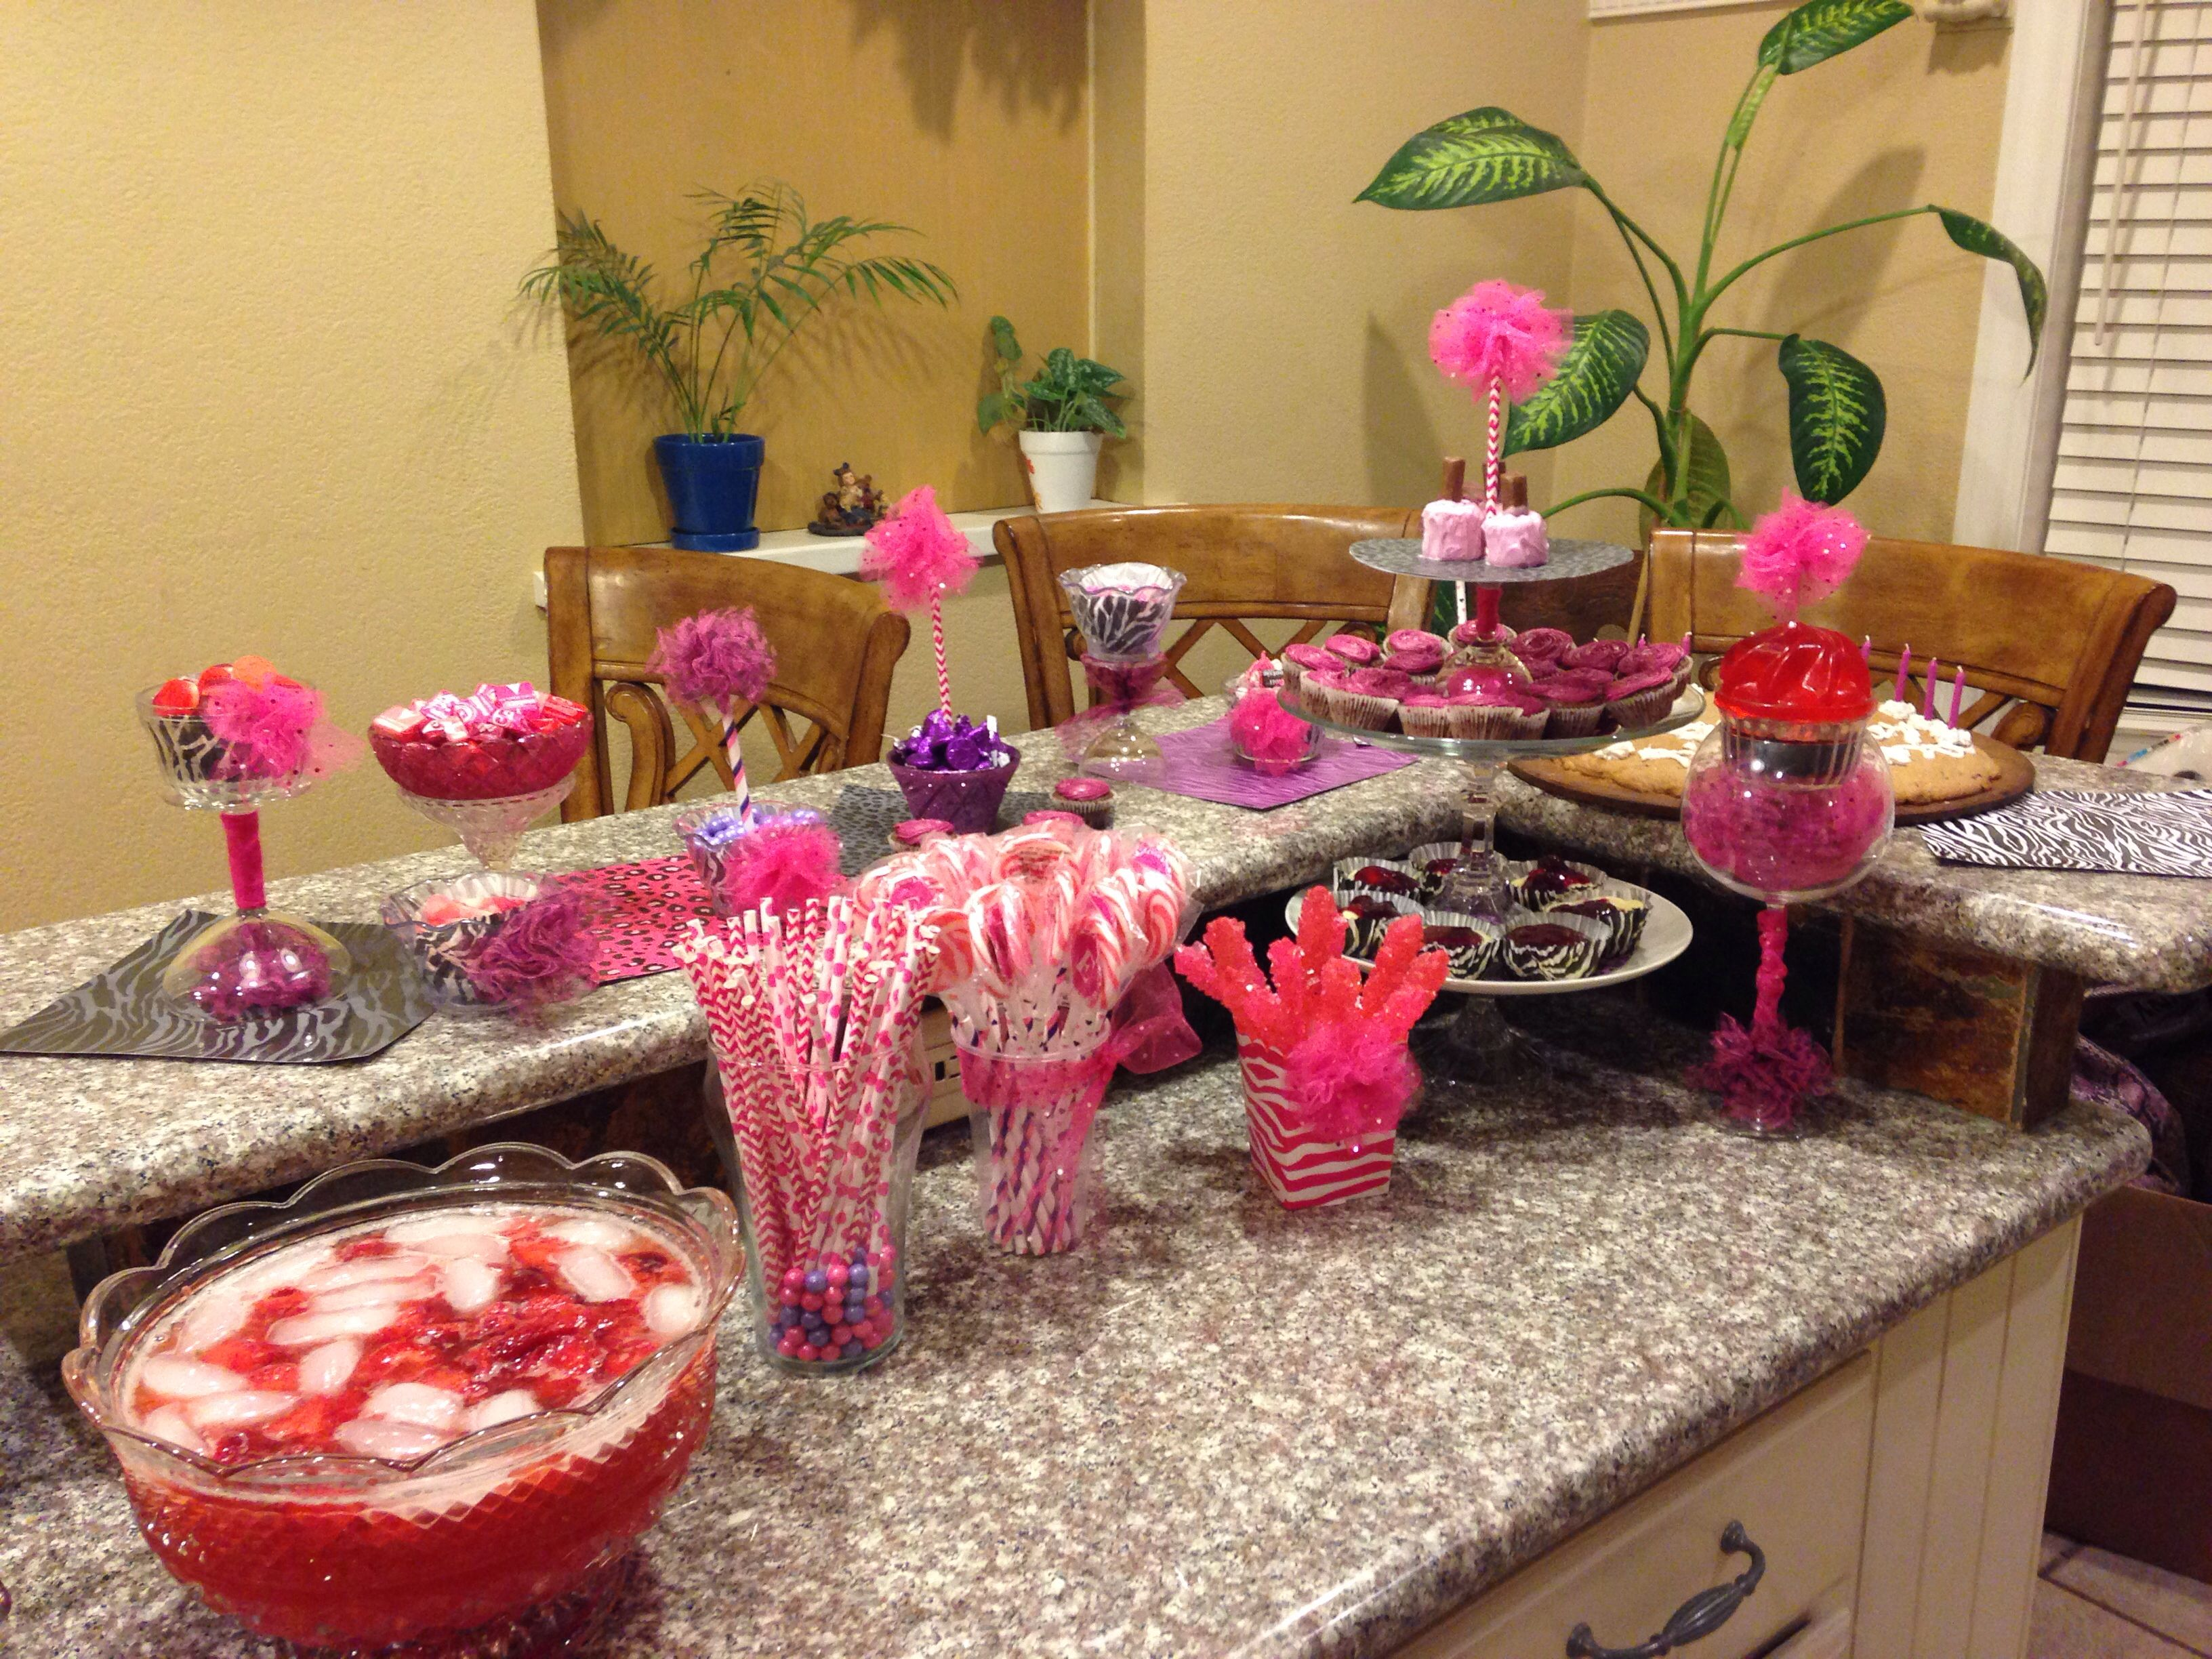 Sweet 13th birthday party ideas pinterest - Themes for a th birthday party ...